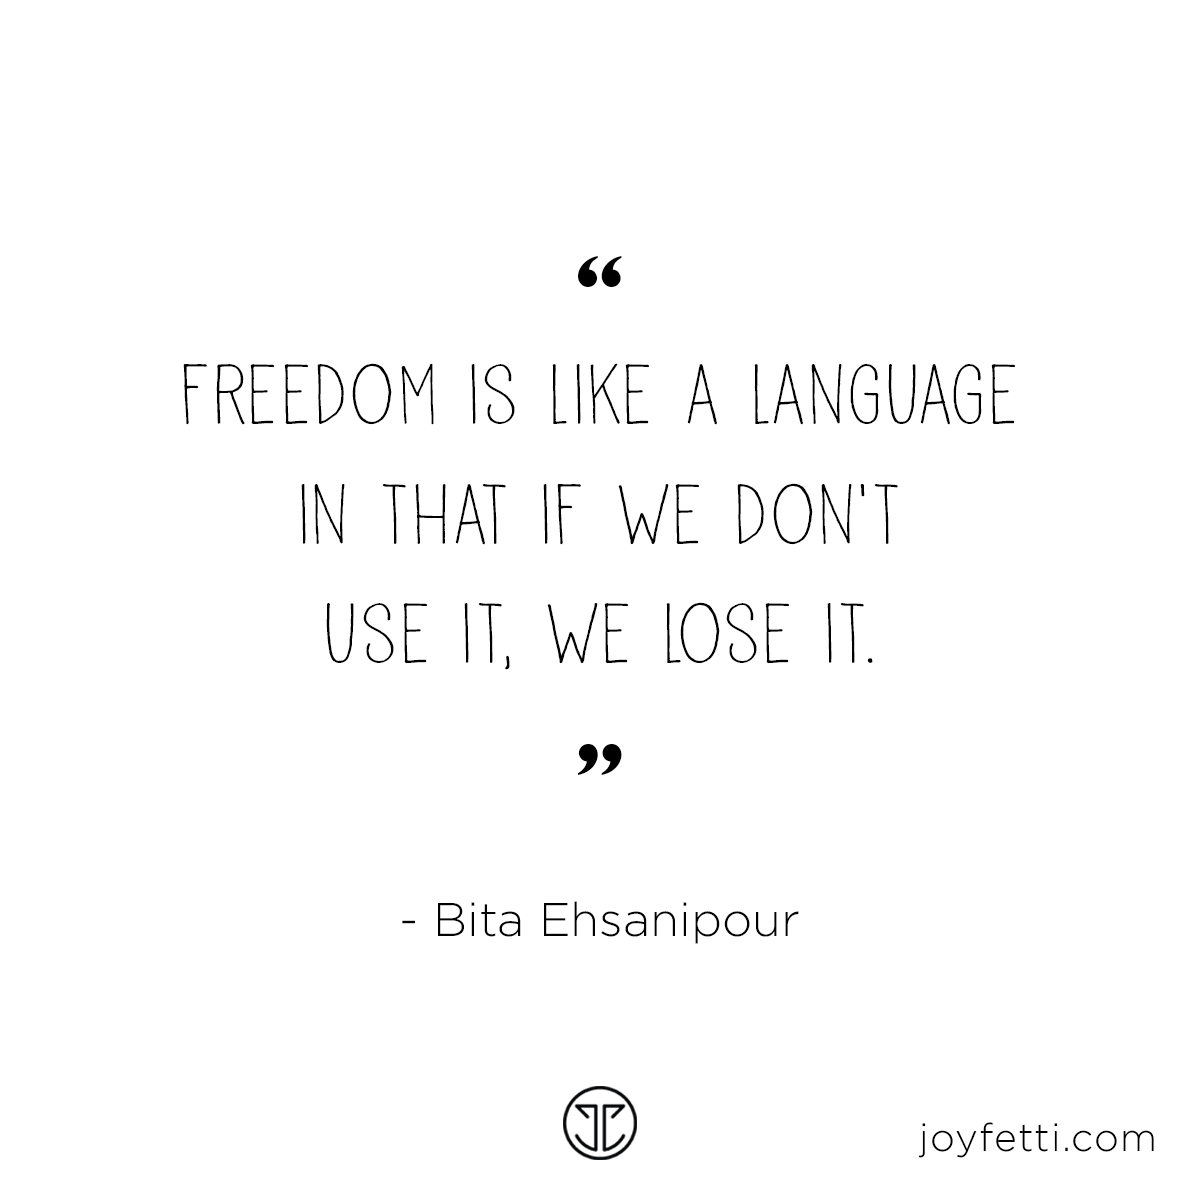 """Freedom is like a language in that if we don't use it, we lose it."" - Bita Ehsanipour on joyfetti.com"